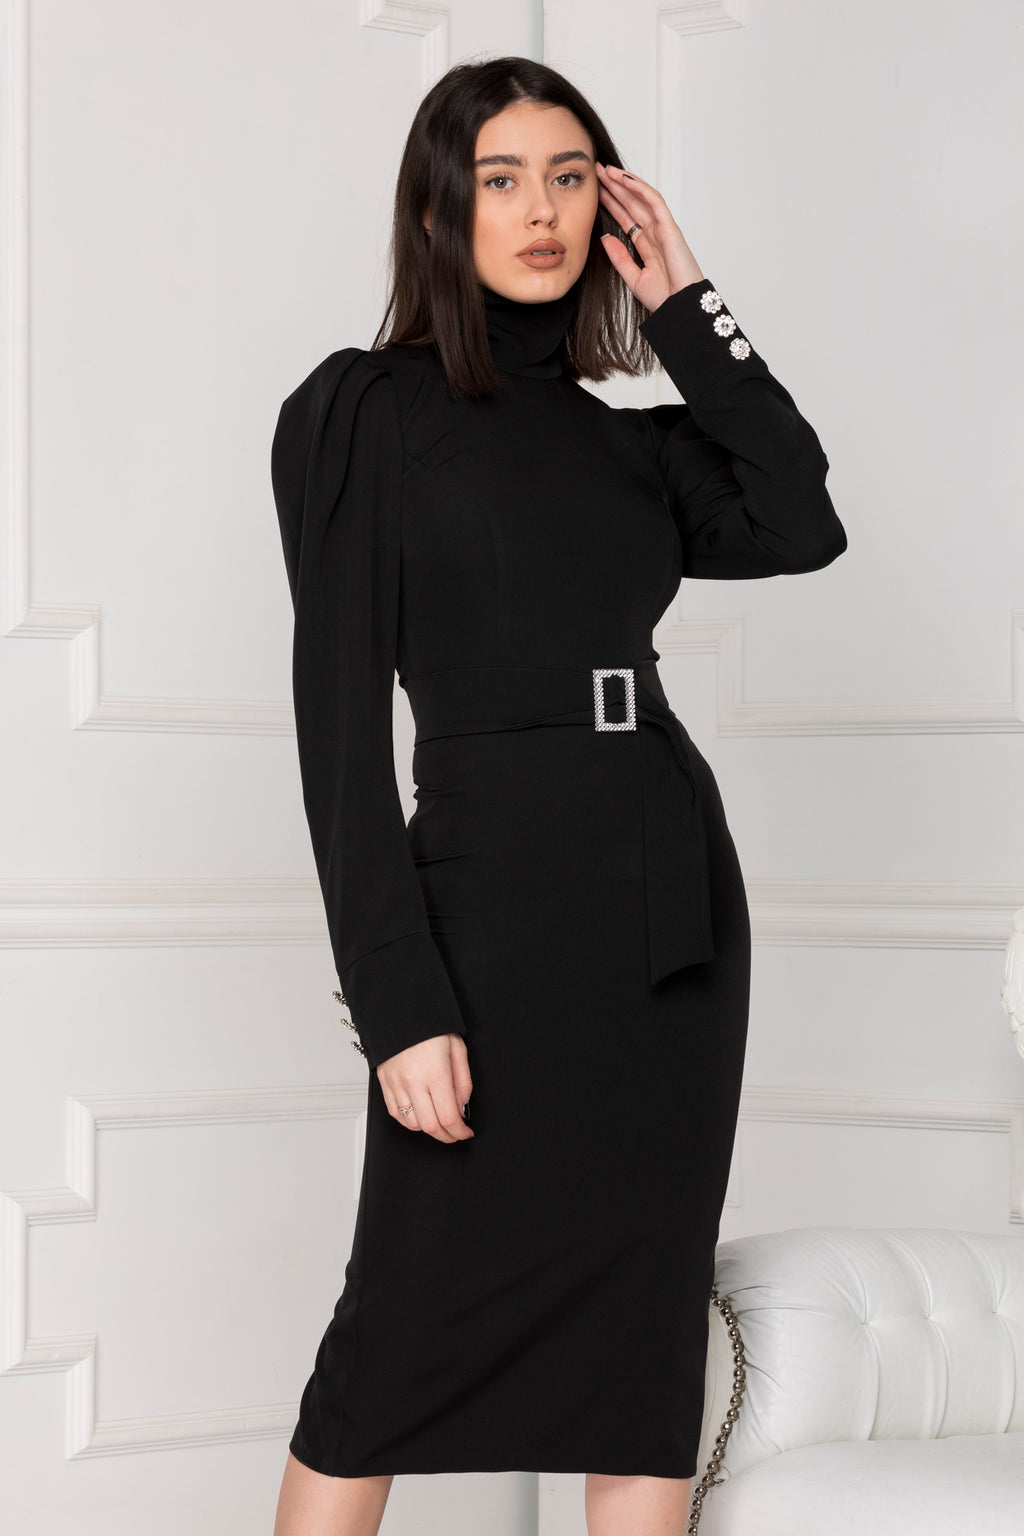 Black Midi Luxe dress with long puff sleeves with cuffs and high neck.